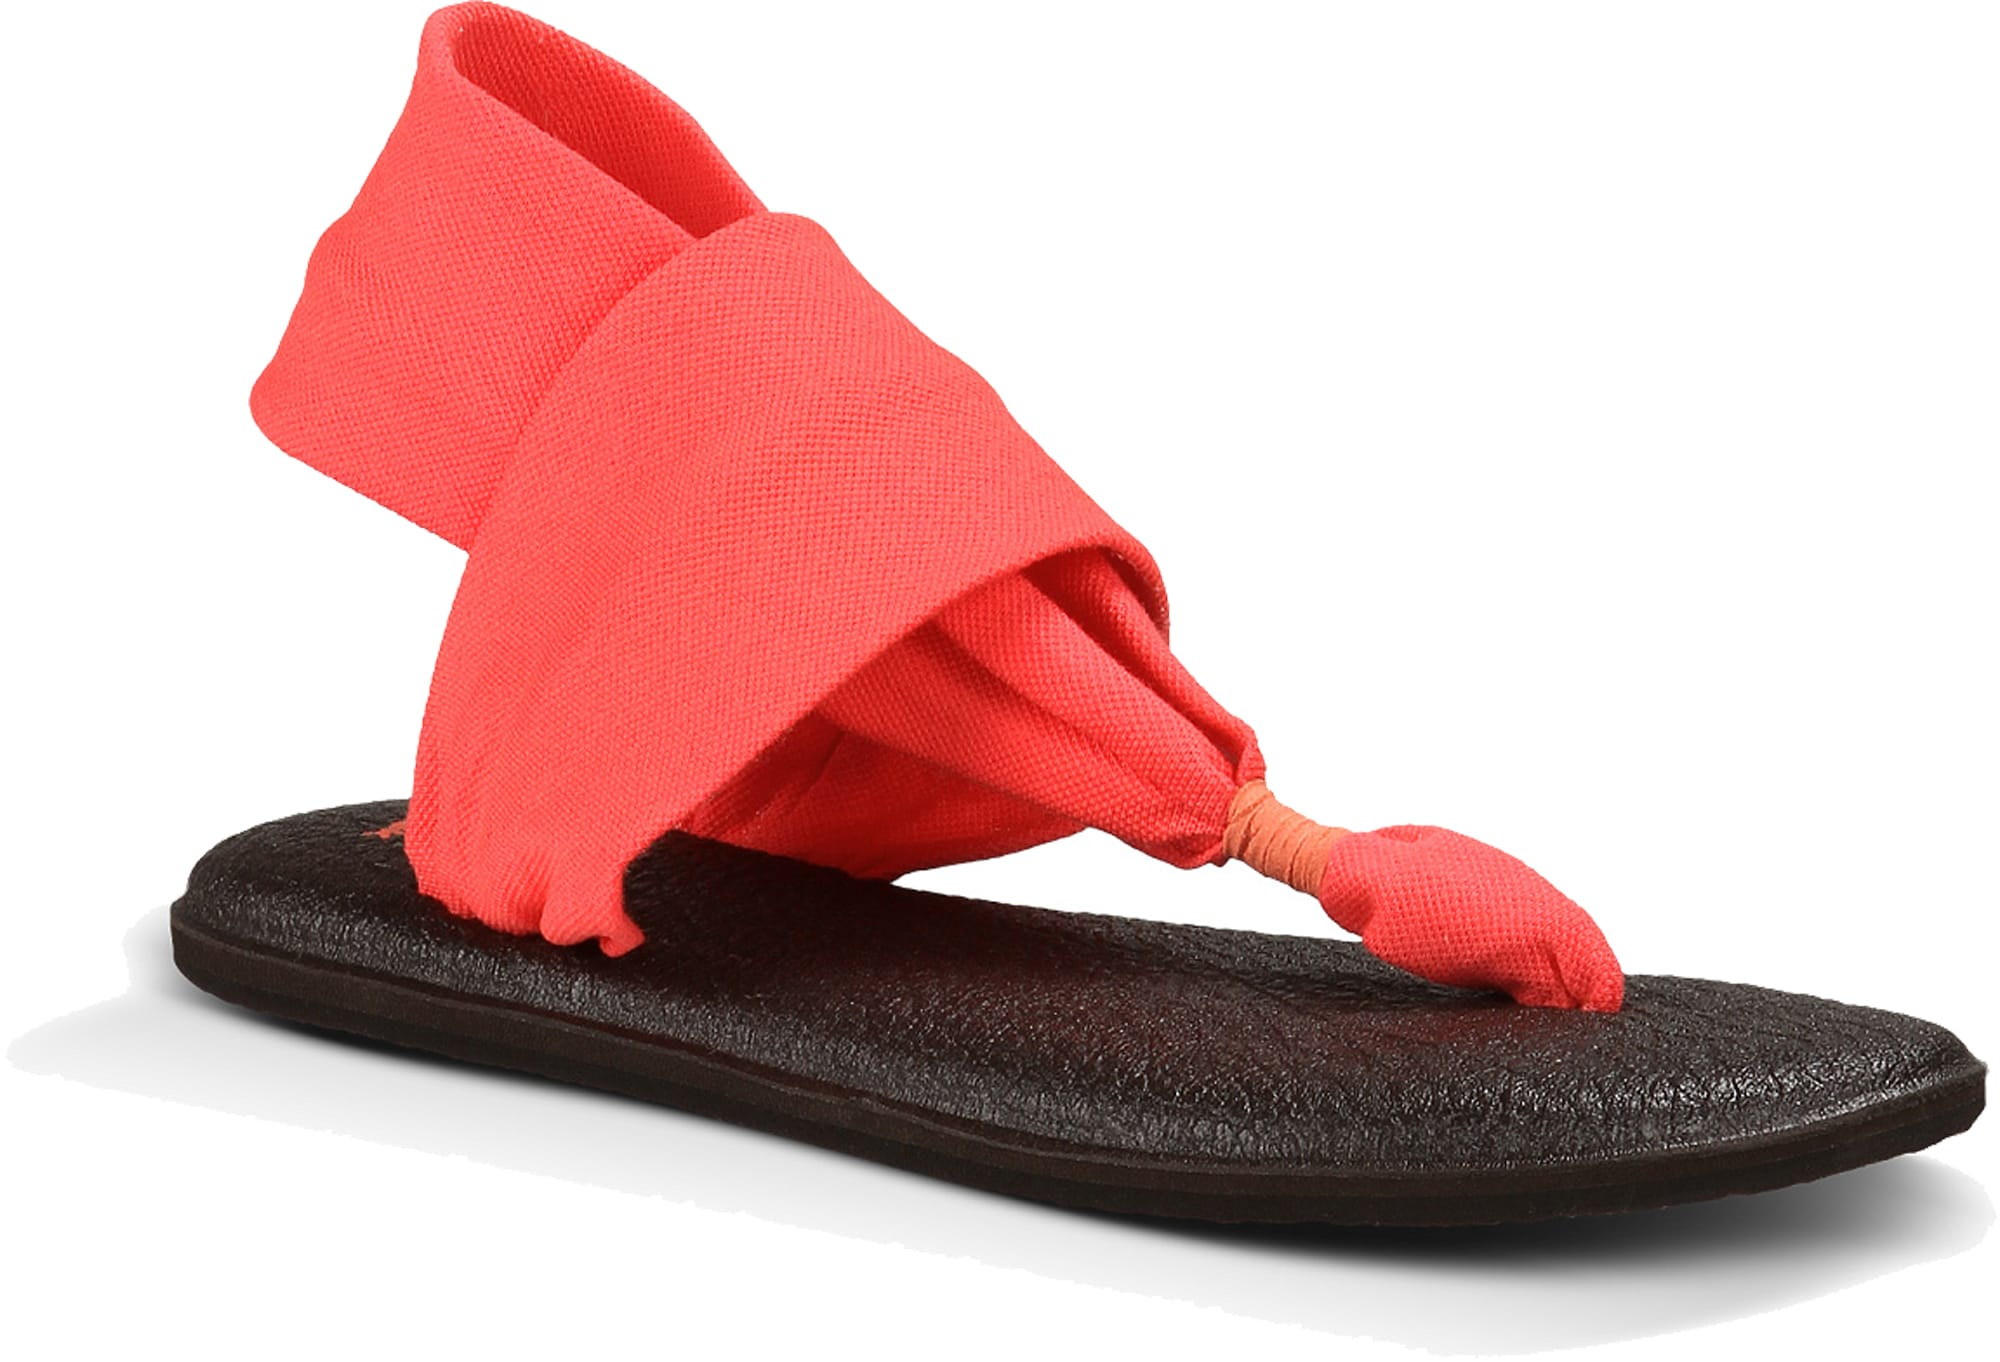 Sanuk yoga Sling sandals at The Flip Flip Shop